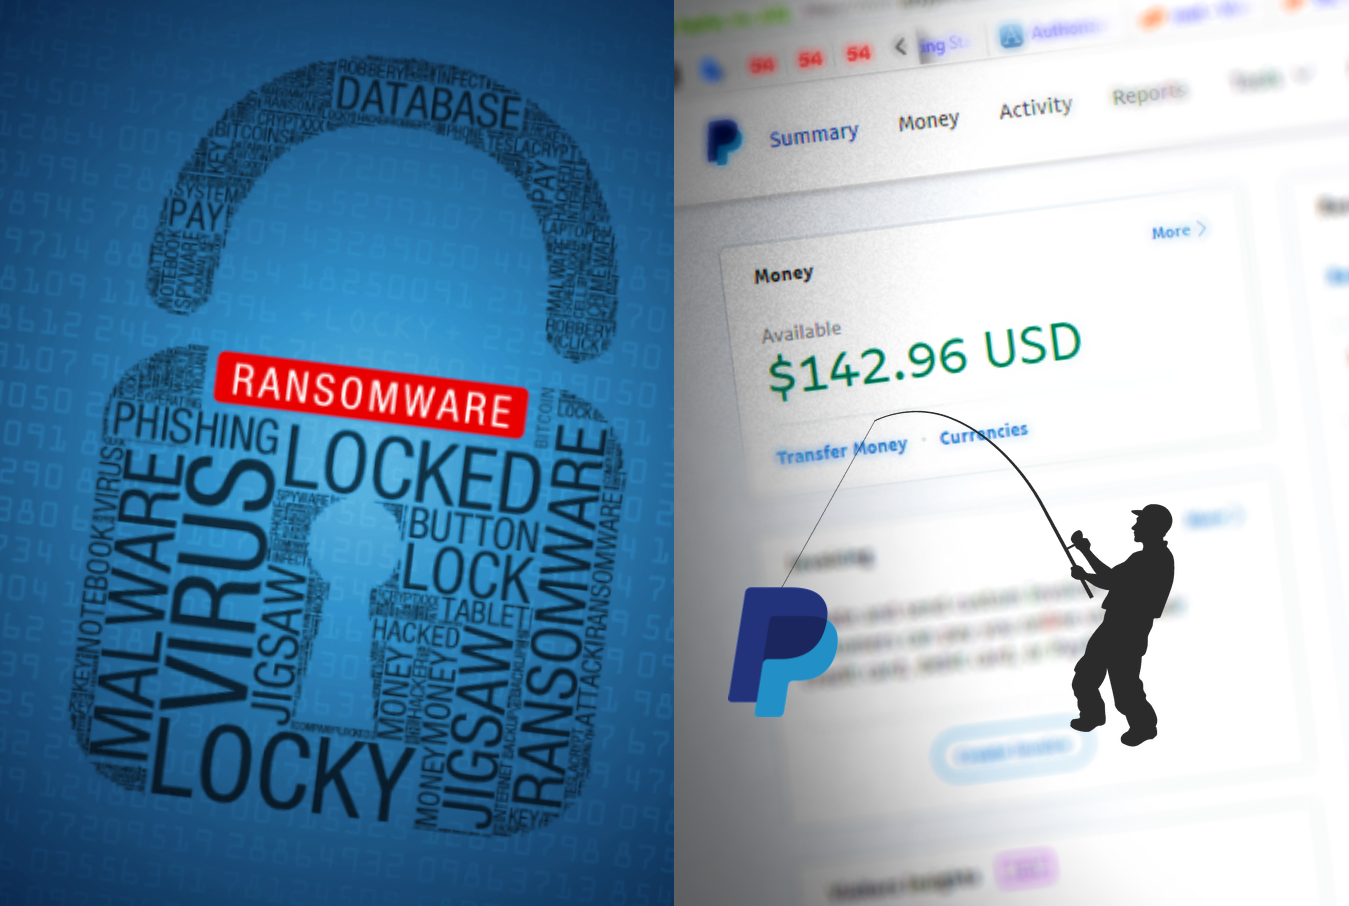 Paypal-phishing-ransomware-scam-3